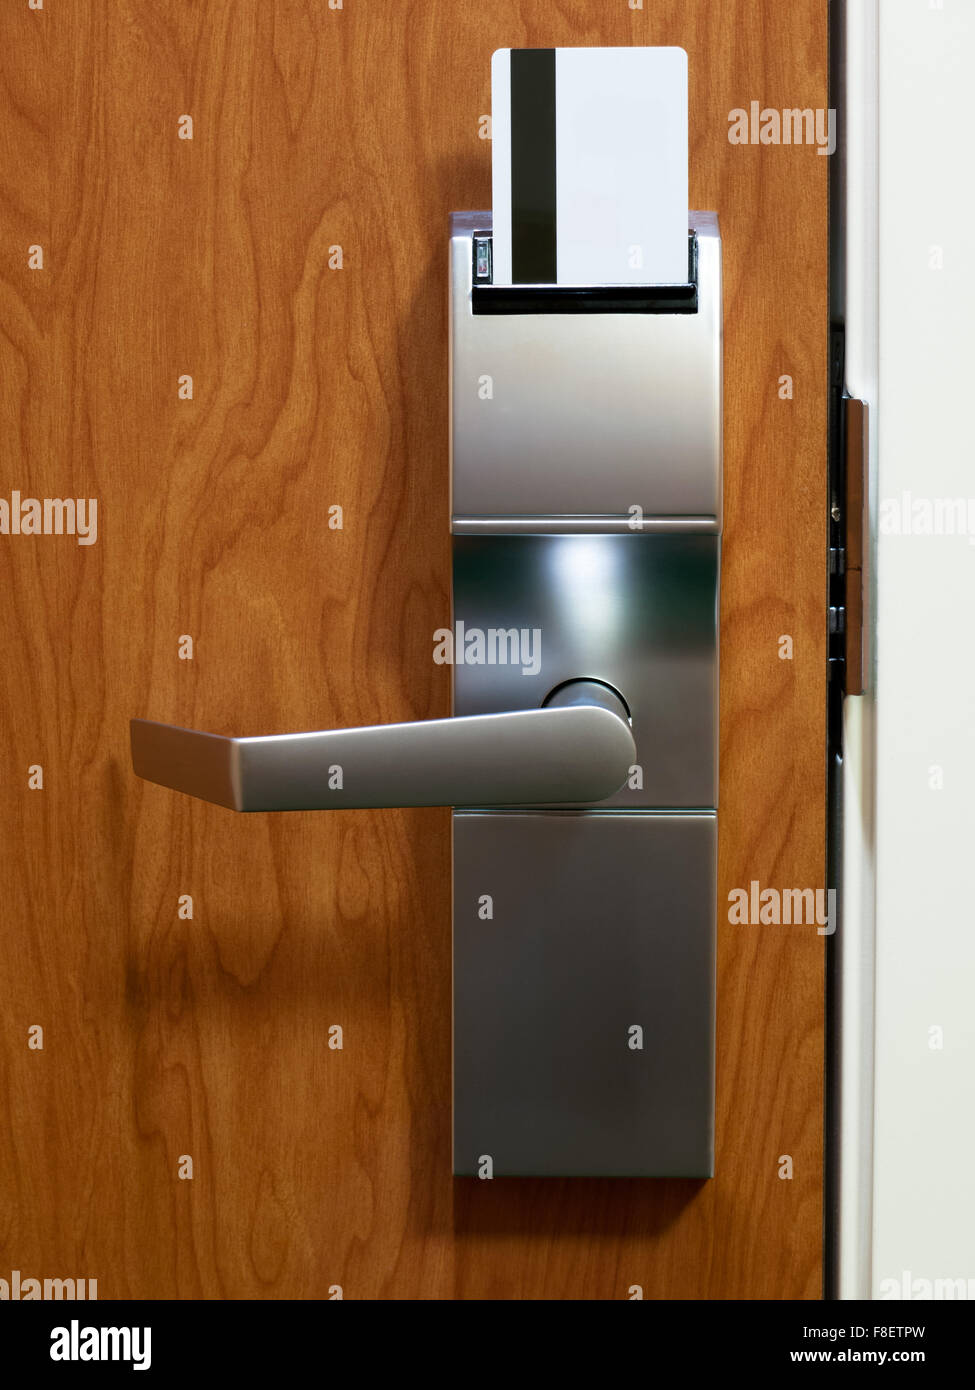 Hotel room electronic door lock with keycard Stock Photo: 91295873